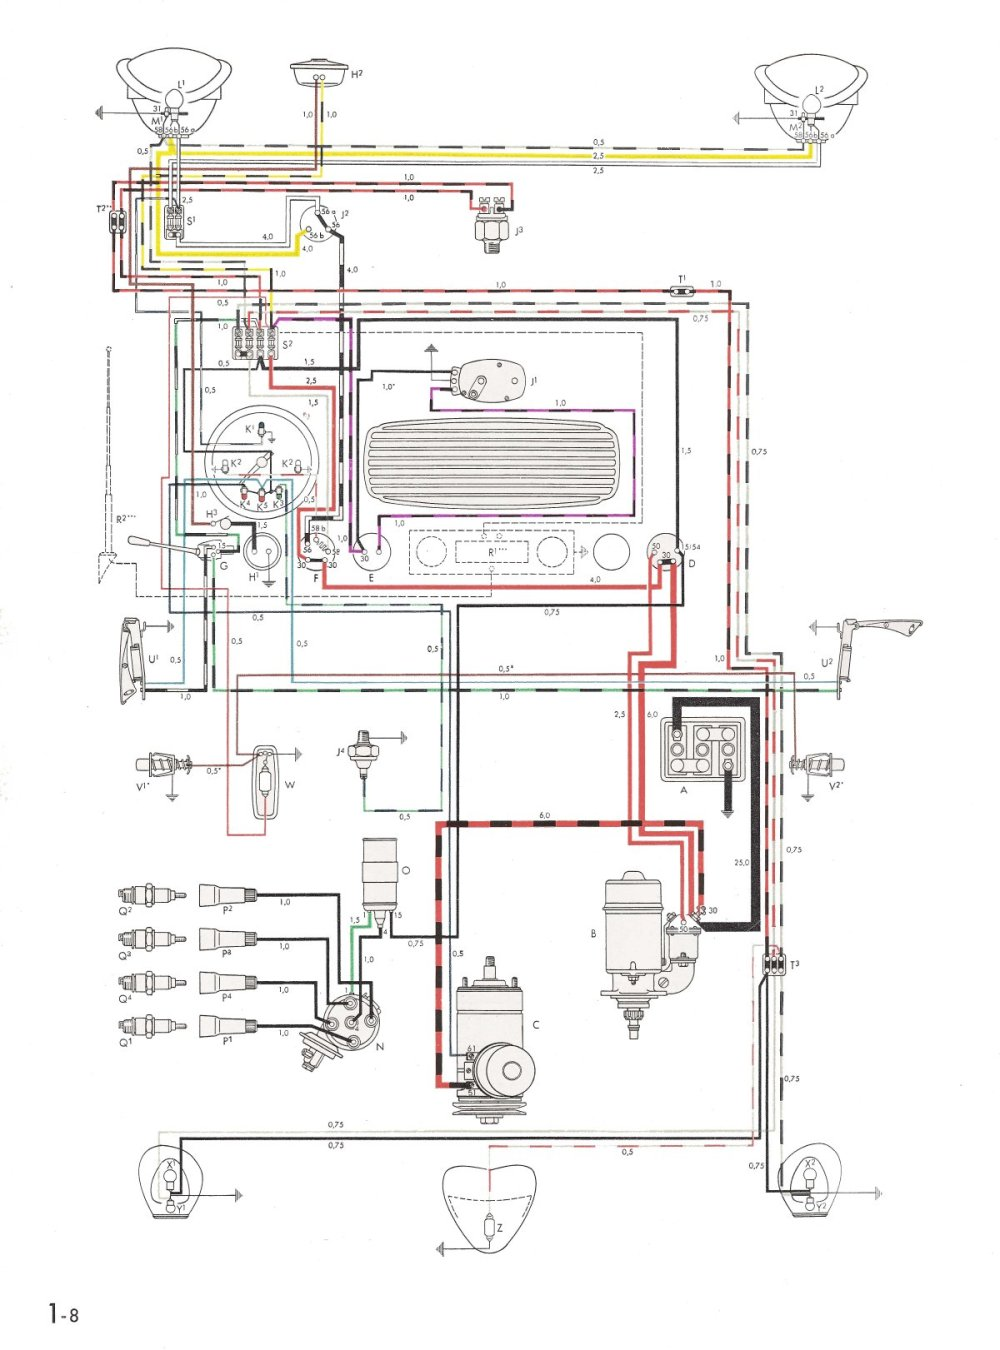 medium resolution of thesamba com type 1 wiring diagrams vw beetle generator wiring diagram vw beetle alternator wiring scematic